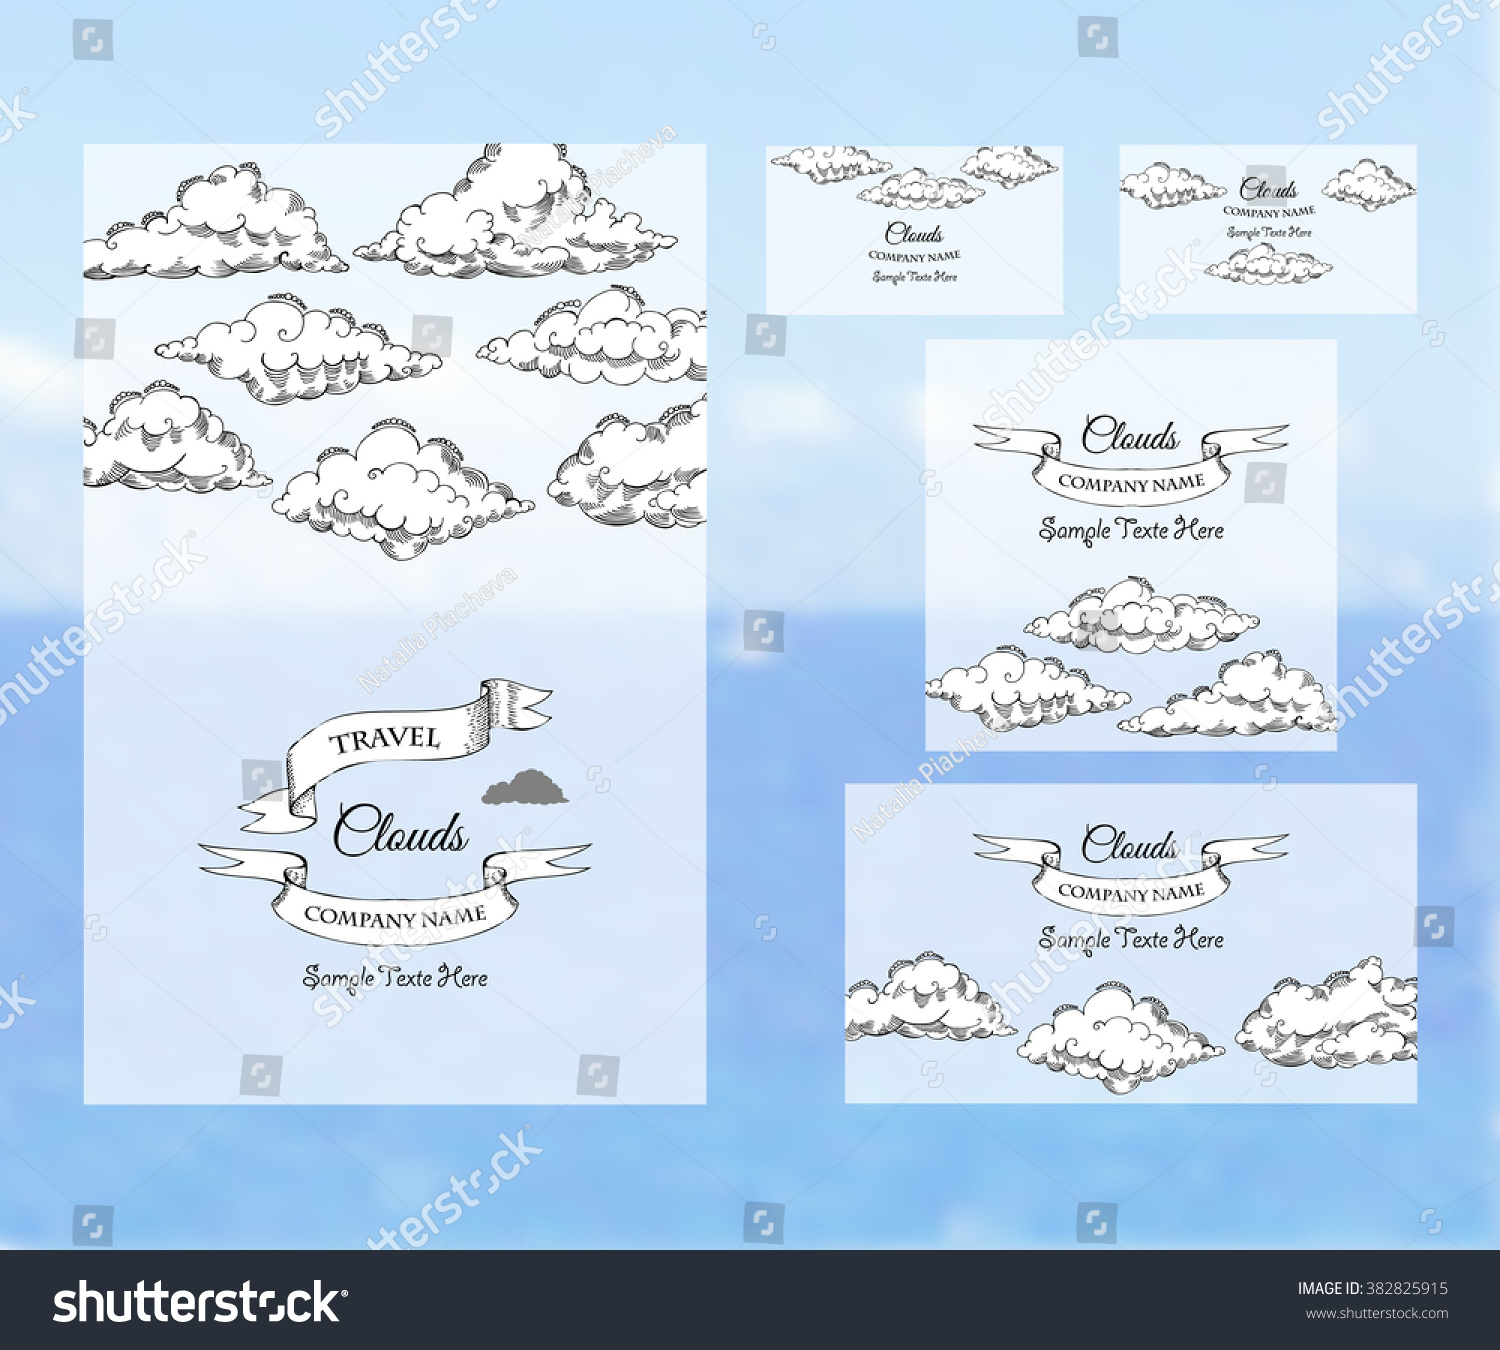 Design templates print travel banner business developing a design templates print grand opening invitation banner design stock vector template corporate identity with clouds sketches background for printed media pronofoot35fo Image collections